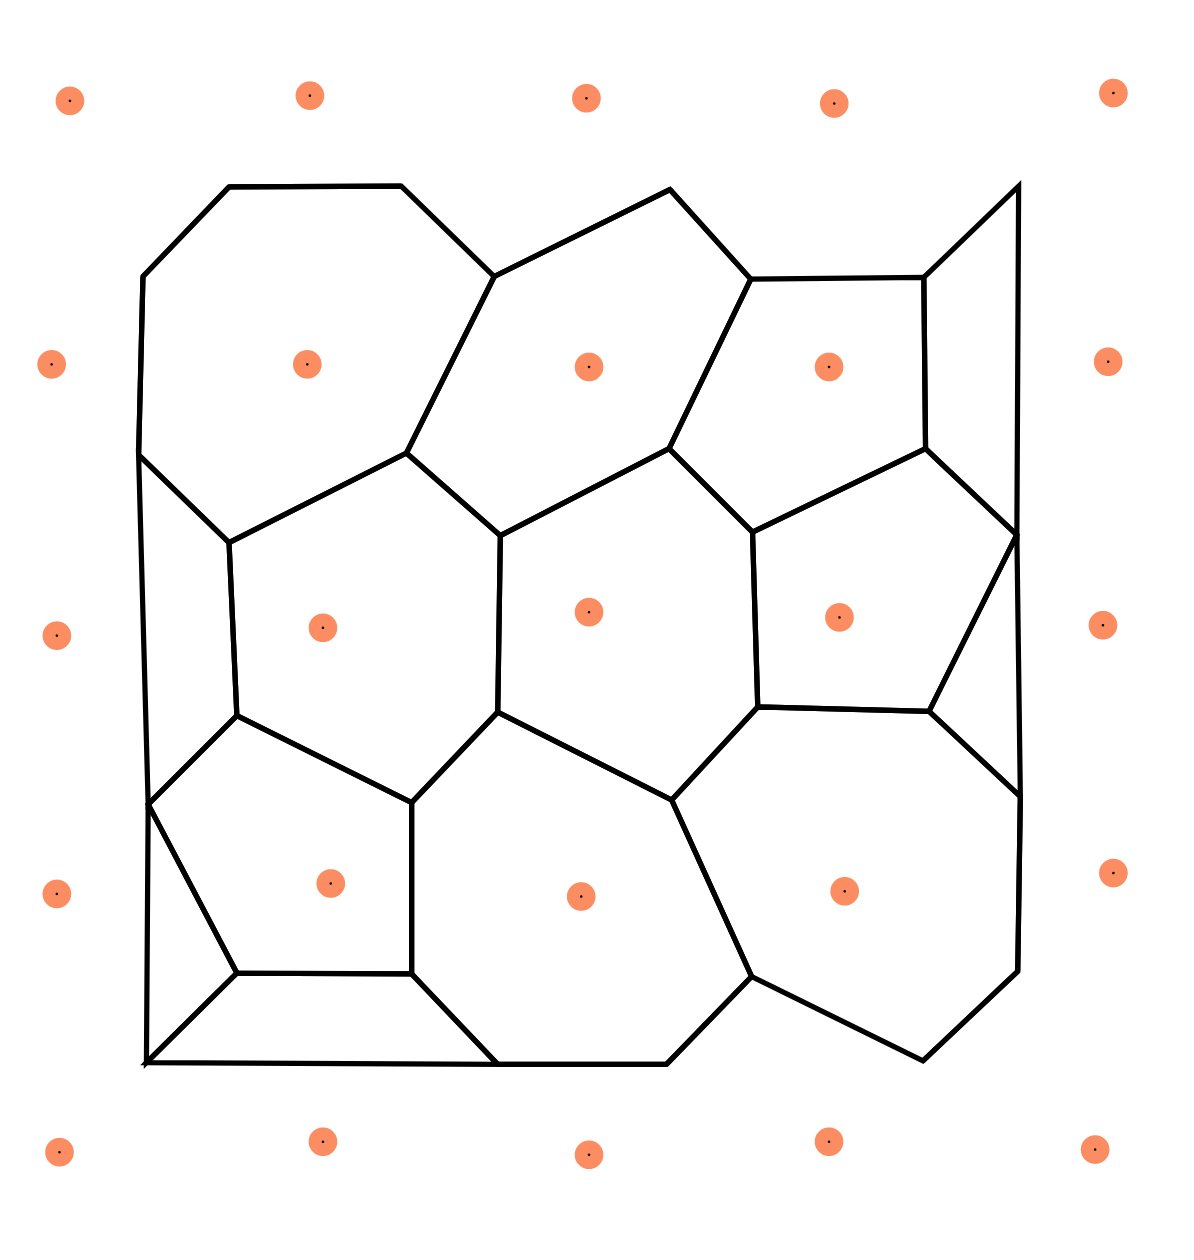 A grid of orange dots, surrounded by black lines representing voronoi edges. Now they actually are enclosed cells, like they're supposed to be.